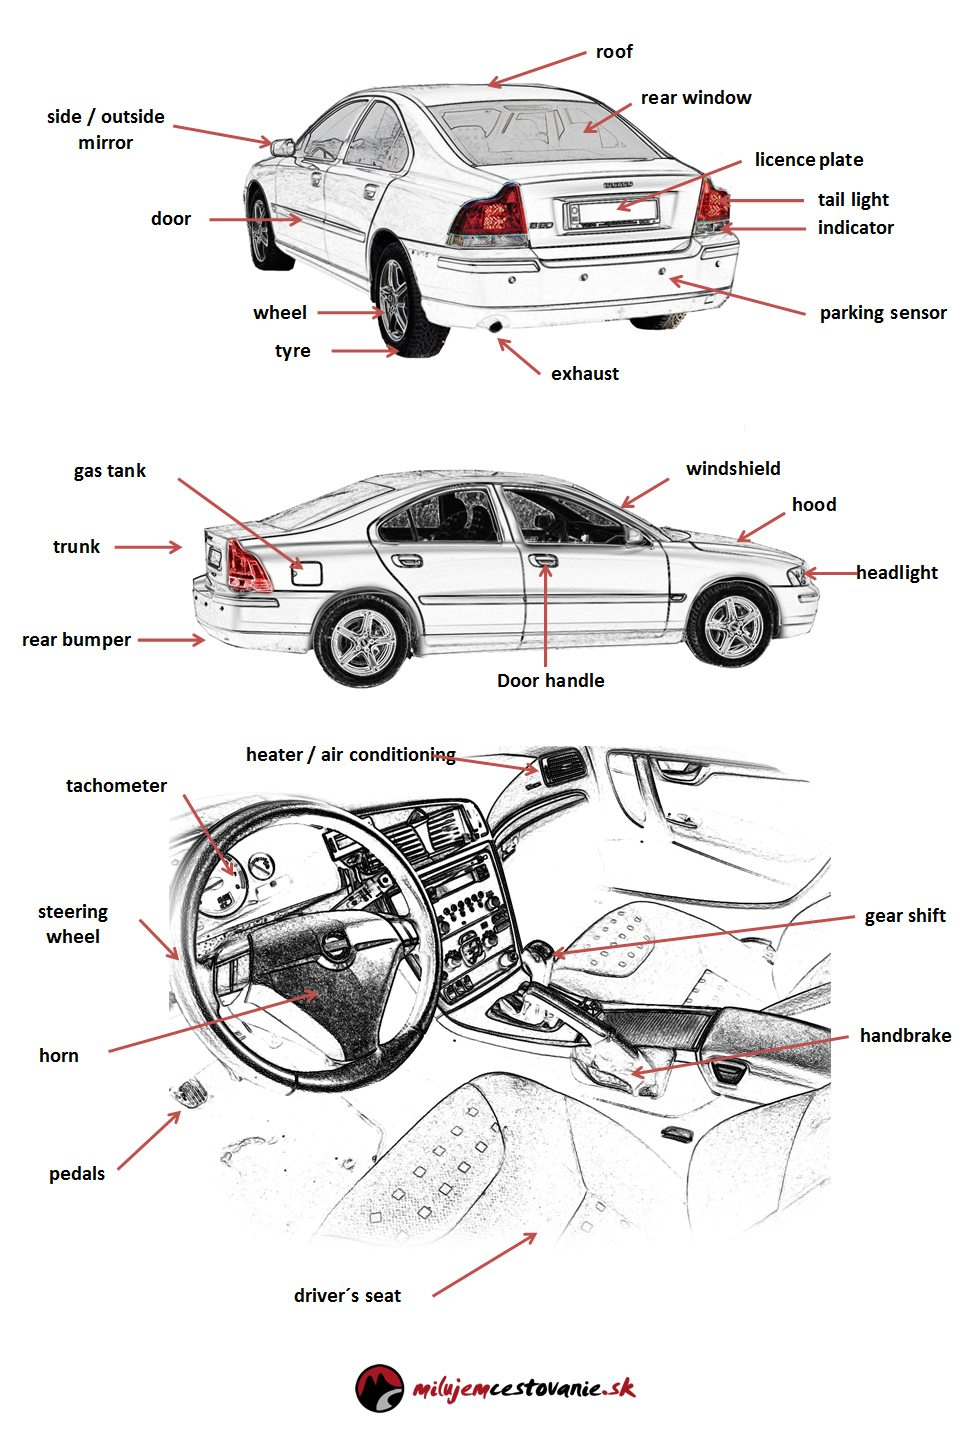 mazda 6 headlight diagram with Interior Car Parts Names Diagram on Automotive Electrical System Basics additionally Mazda 6 Gg 2002 2007 Wiring Diagrams in addition 2008 Ford Super Duty F 650 F 750 Passenger  partment Fuse Panel And Relay moreover P 0900c1528003c6bb as well 5l03j 1990 F350 Rear Light Wiring Showing Wire Colors Schematic.